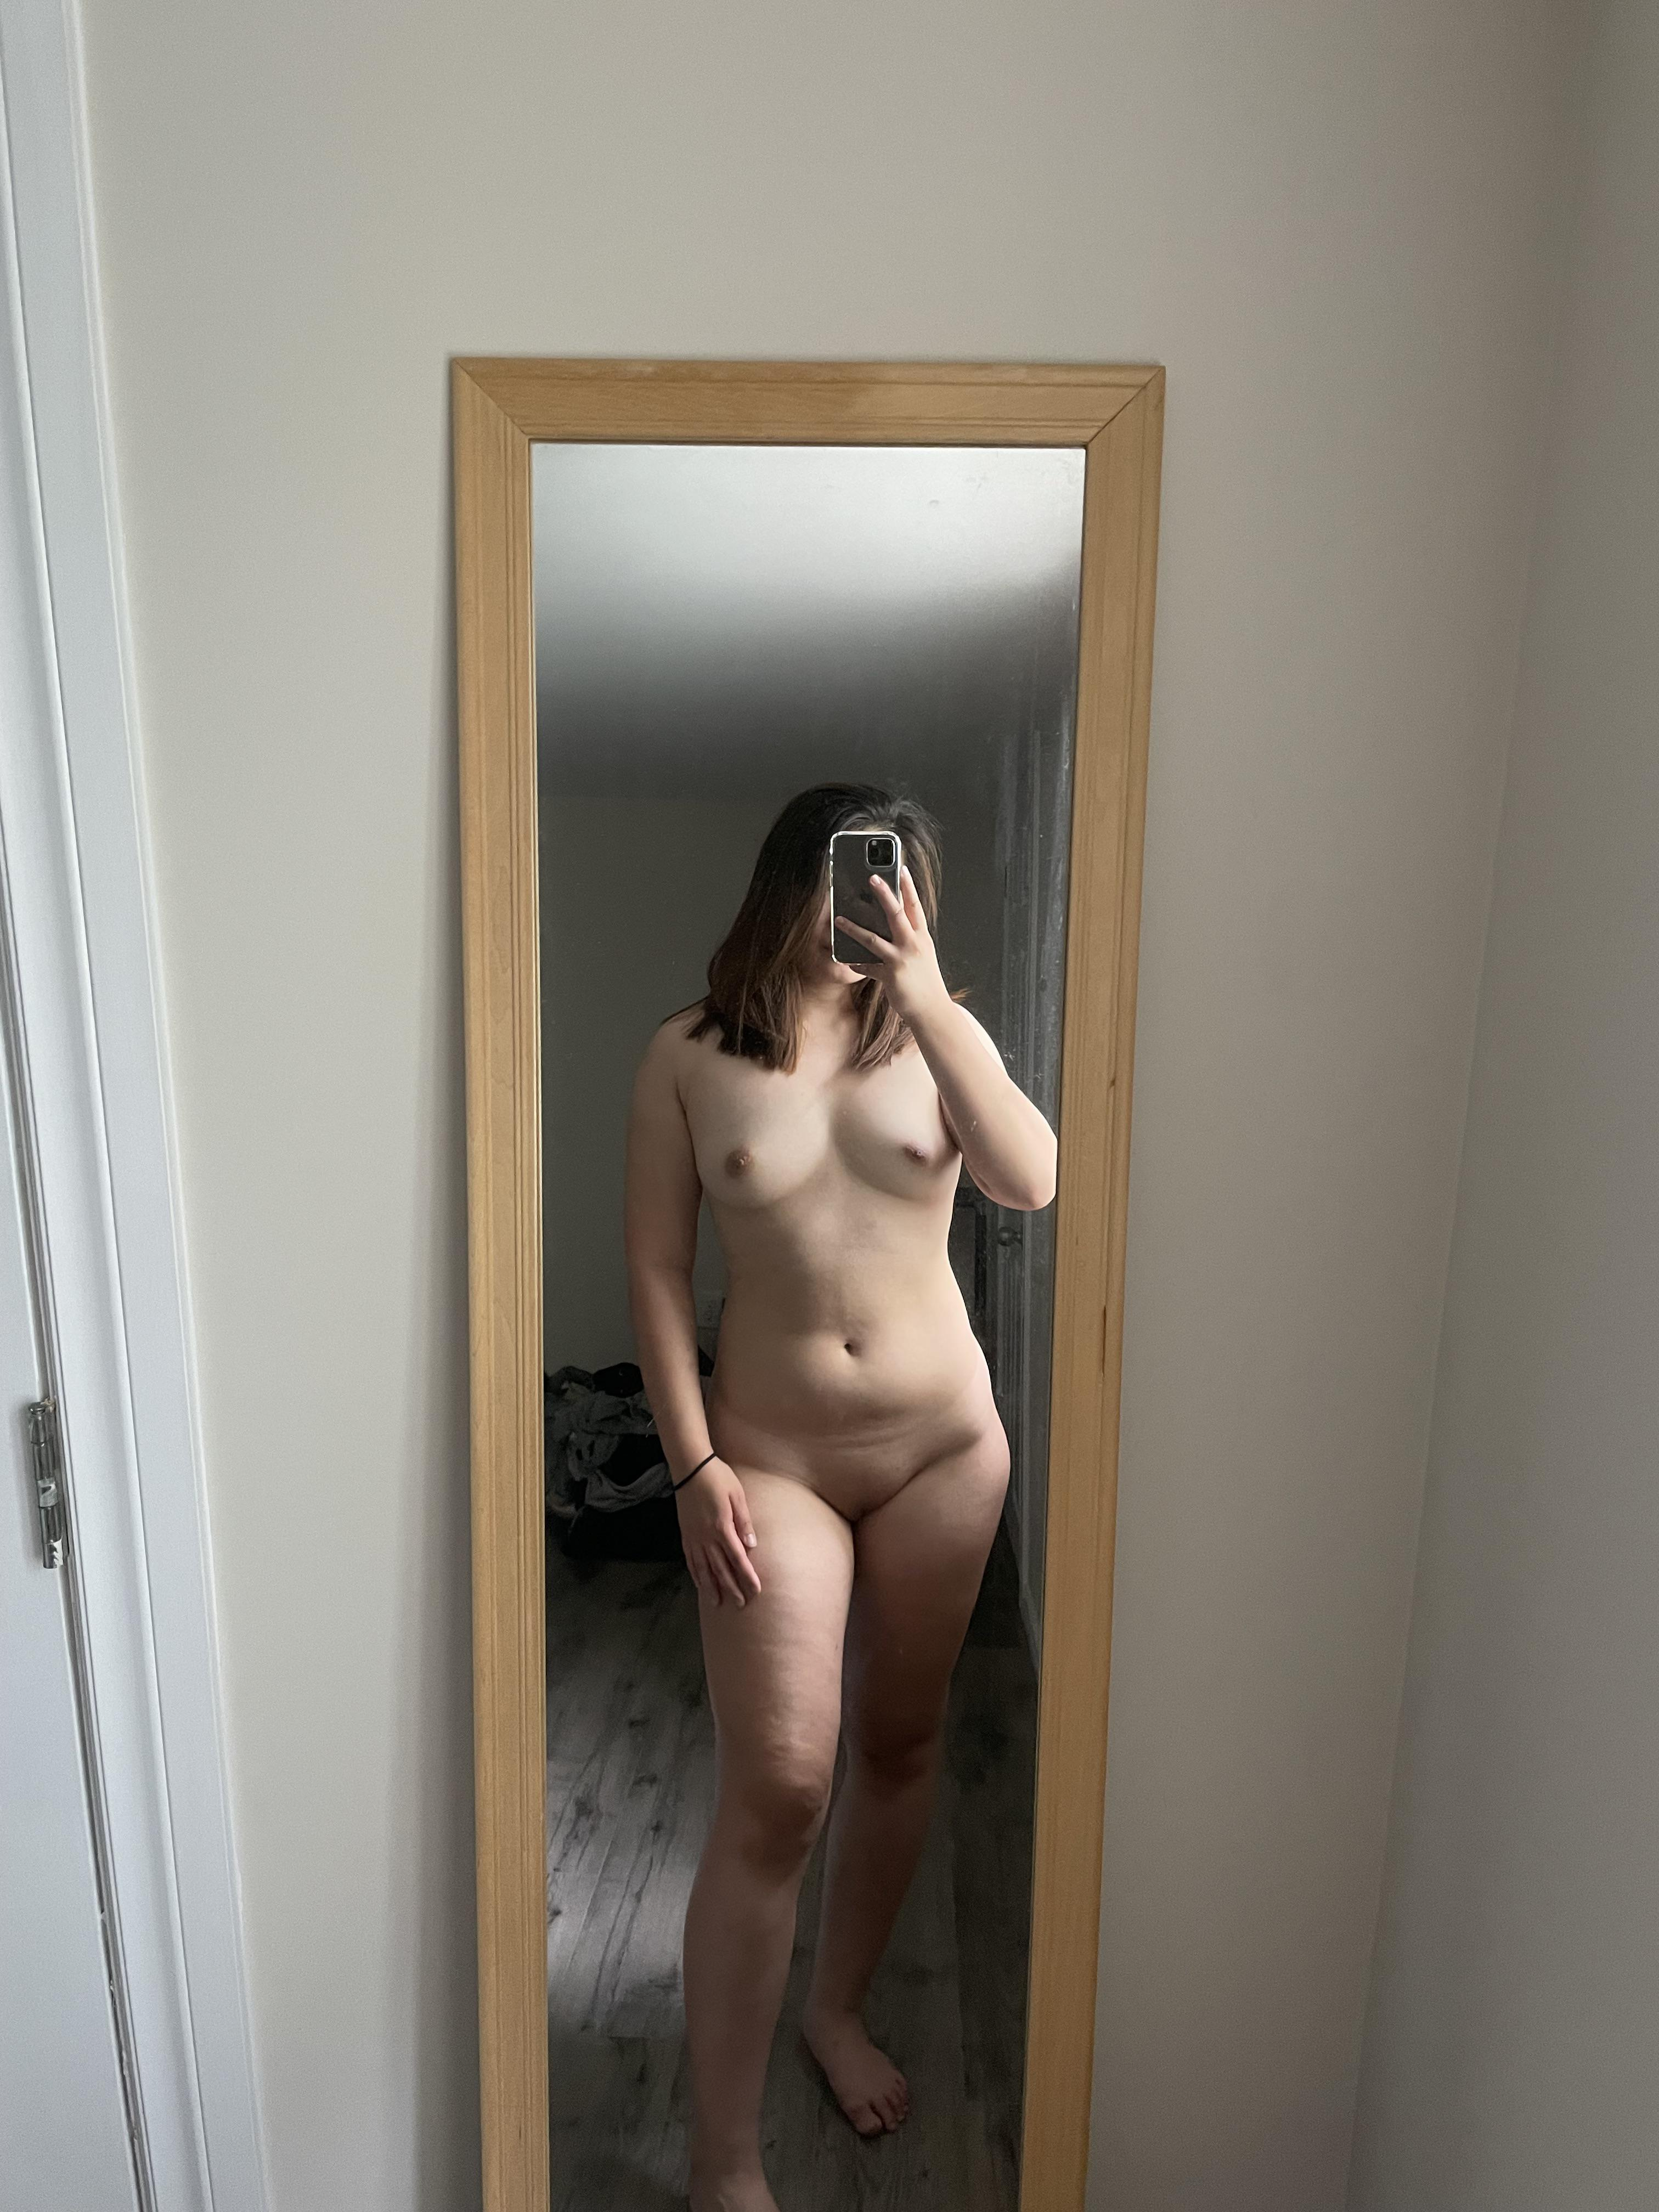 One of our naked asian pics called not the best looking body out there, but hopefully this nude can get some love still 🥺